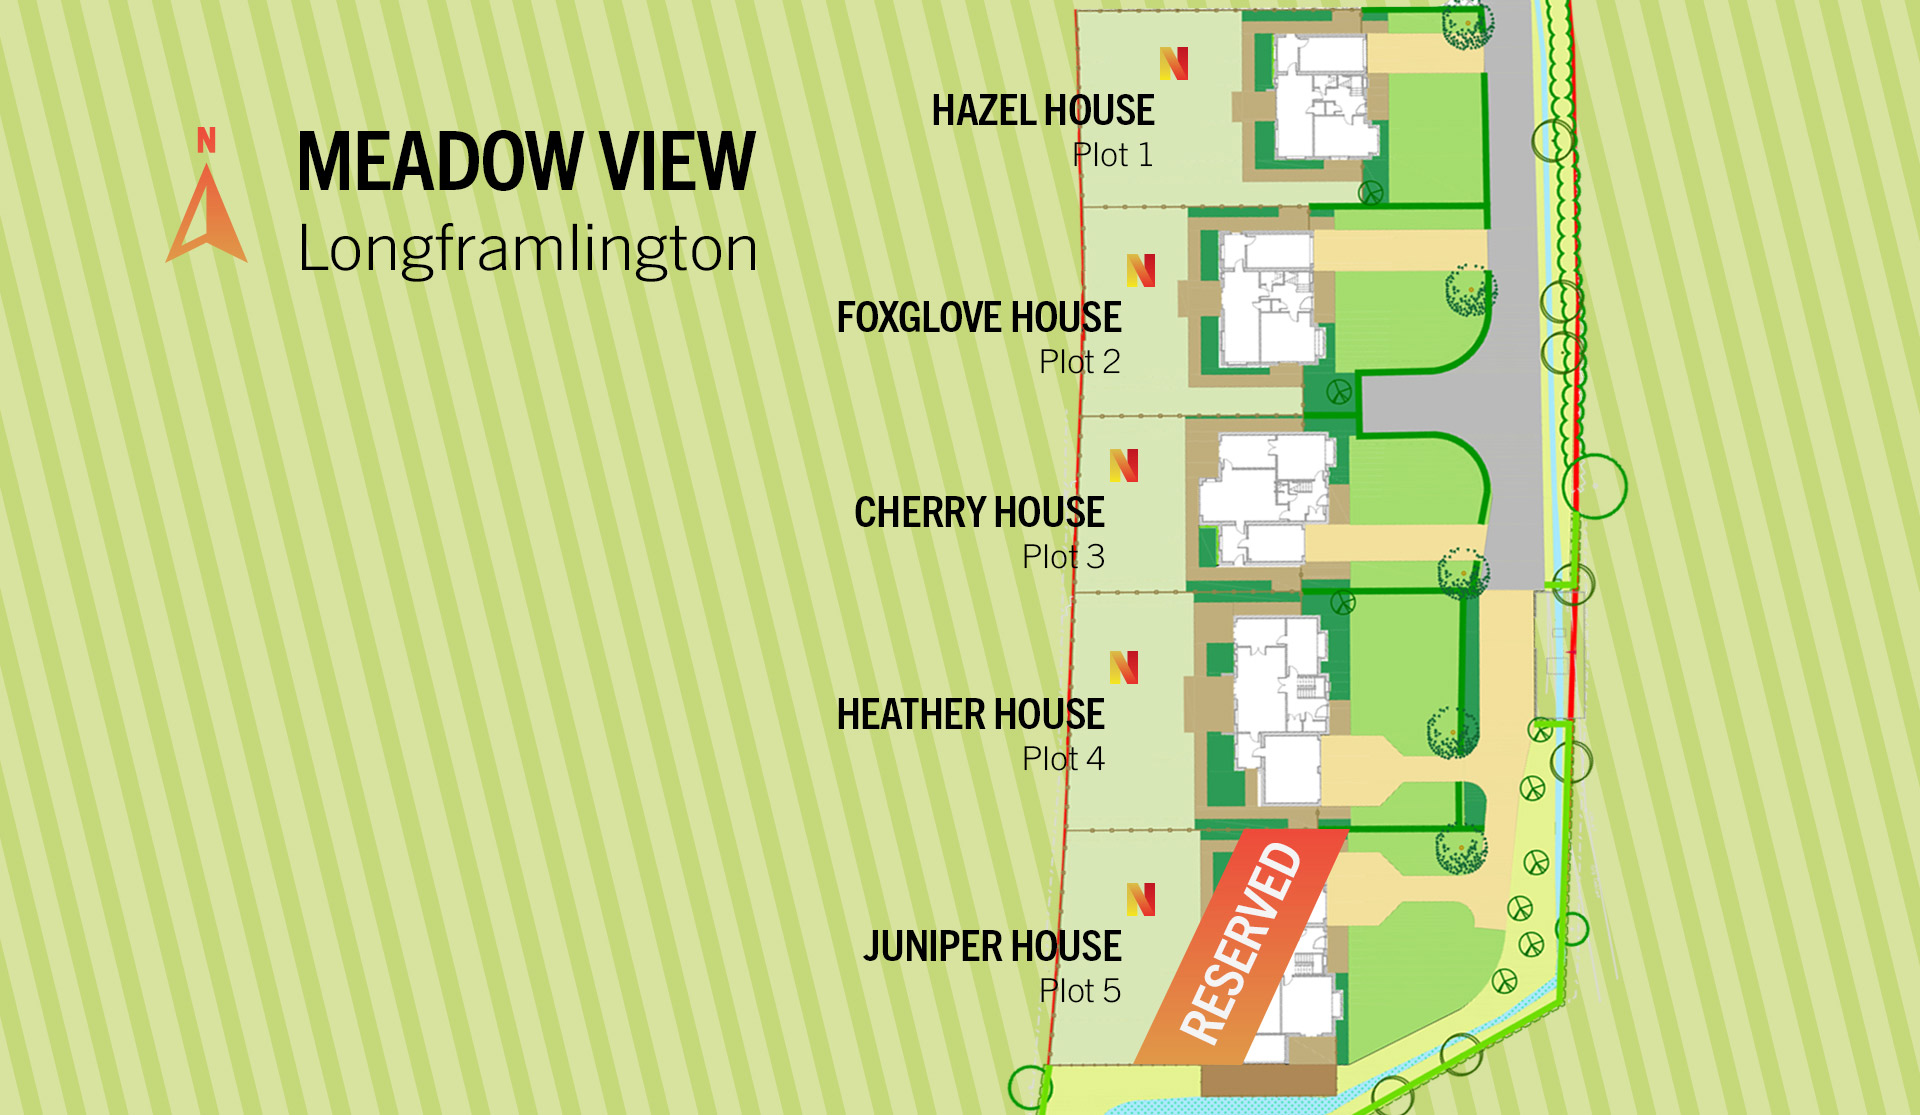 Meadow View Siteplan